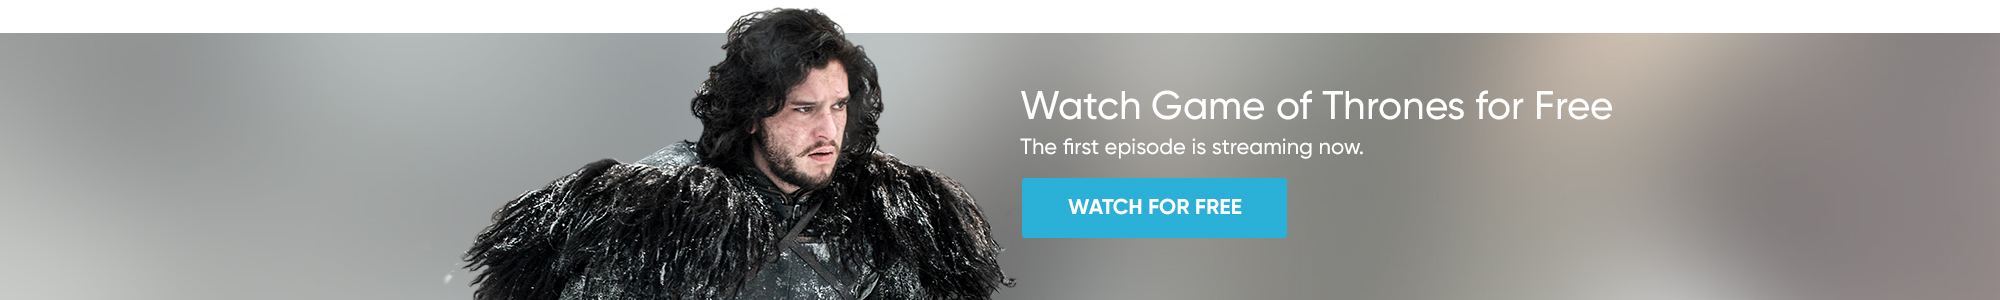 Watch Game of Thrones for Free